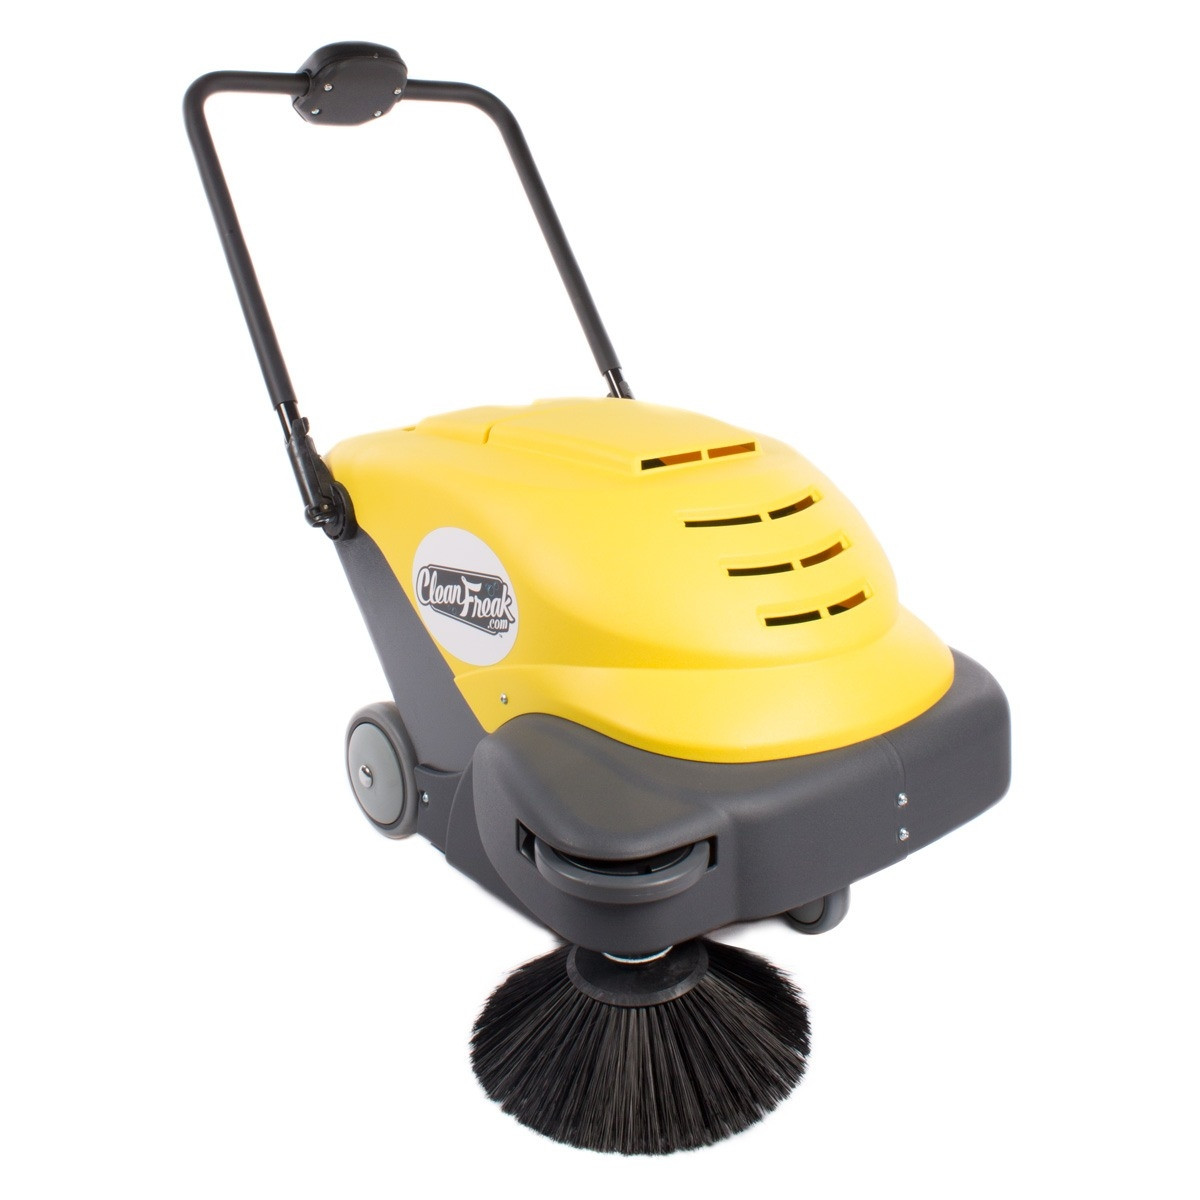 Warehouse Concrete Floor Sweeper Cleanfreak 174 Easysweep